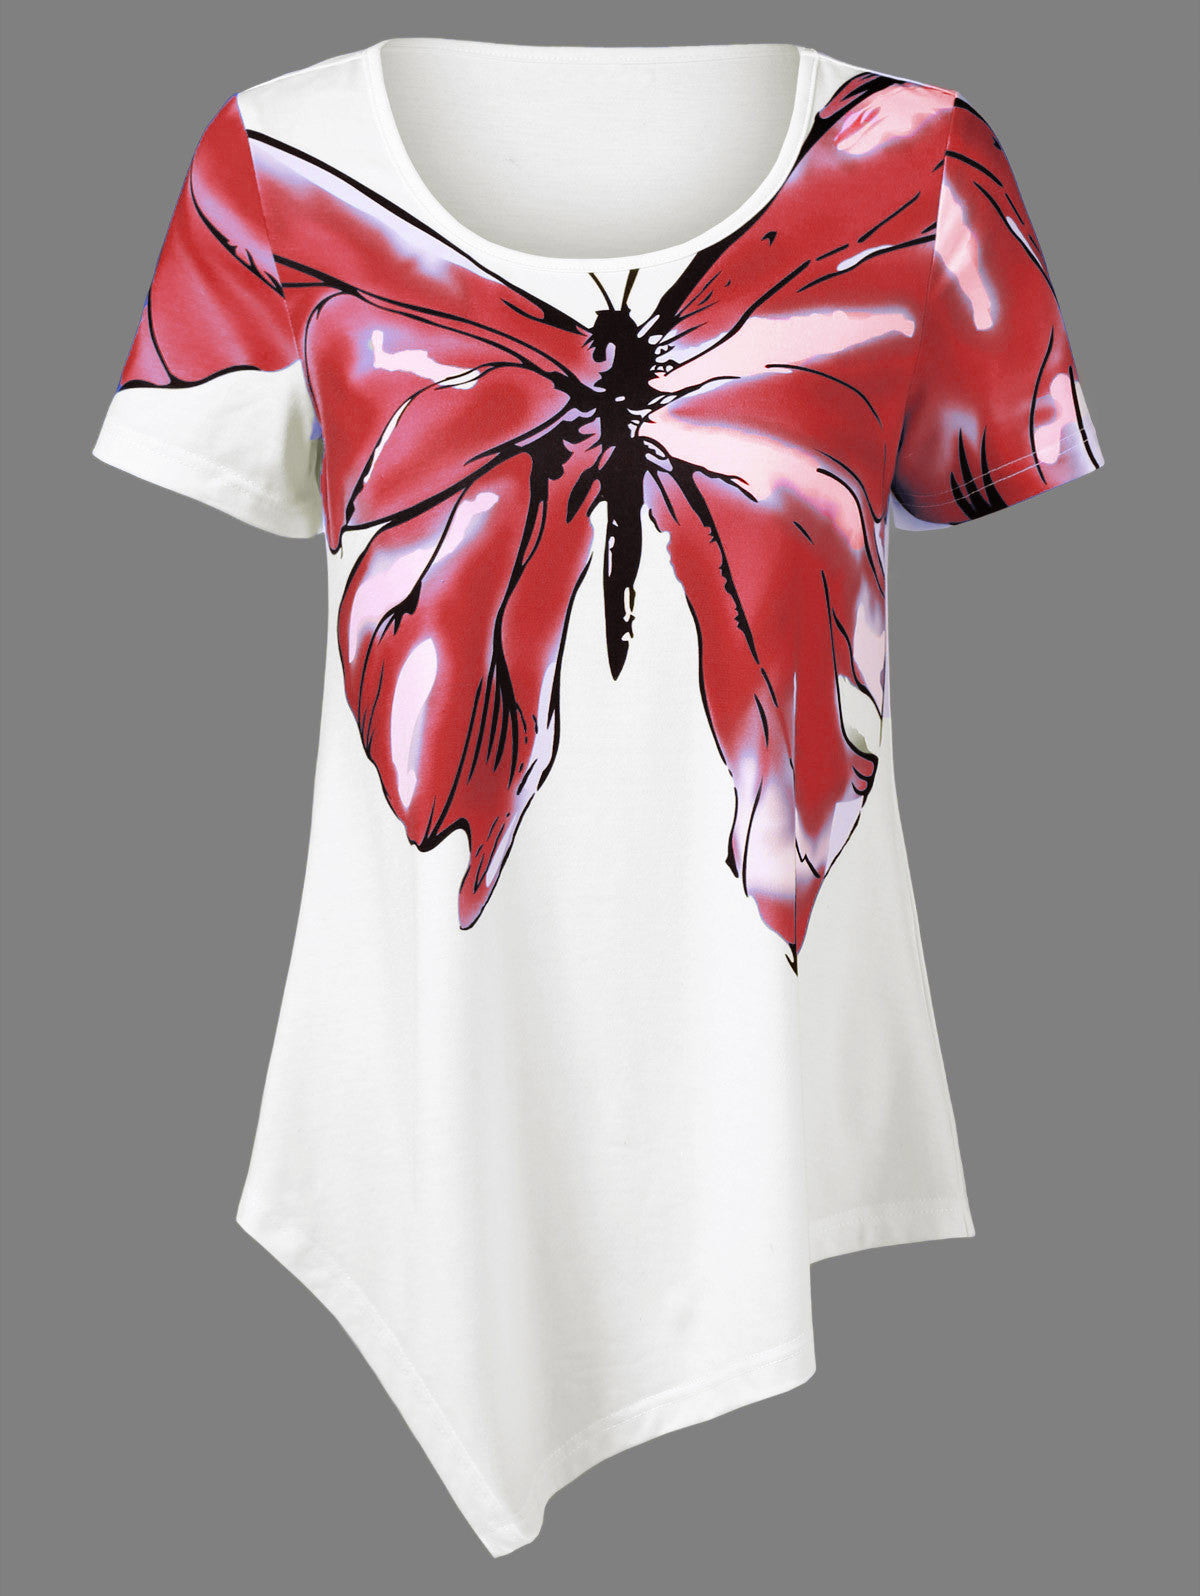 Butterfly Print Short Sleeve Tops